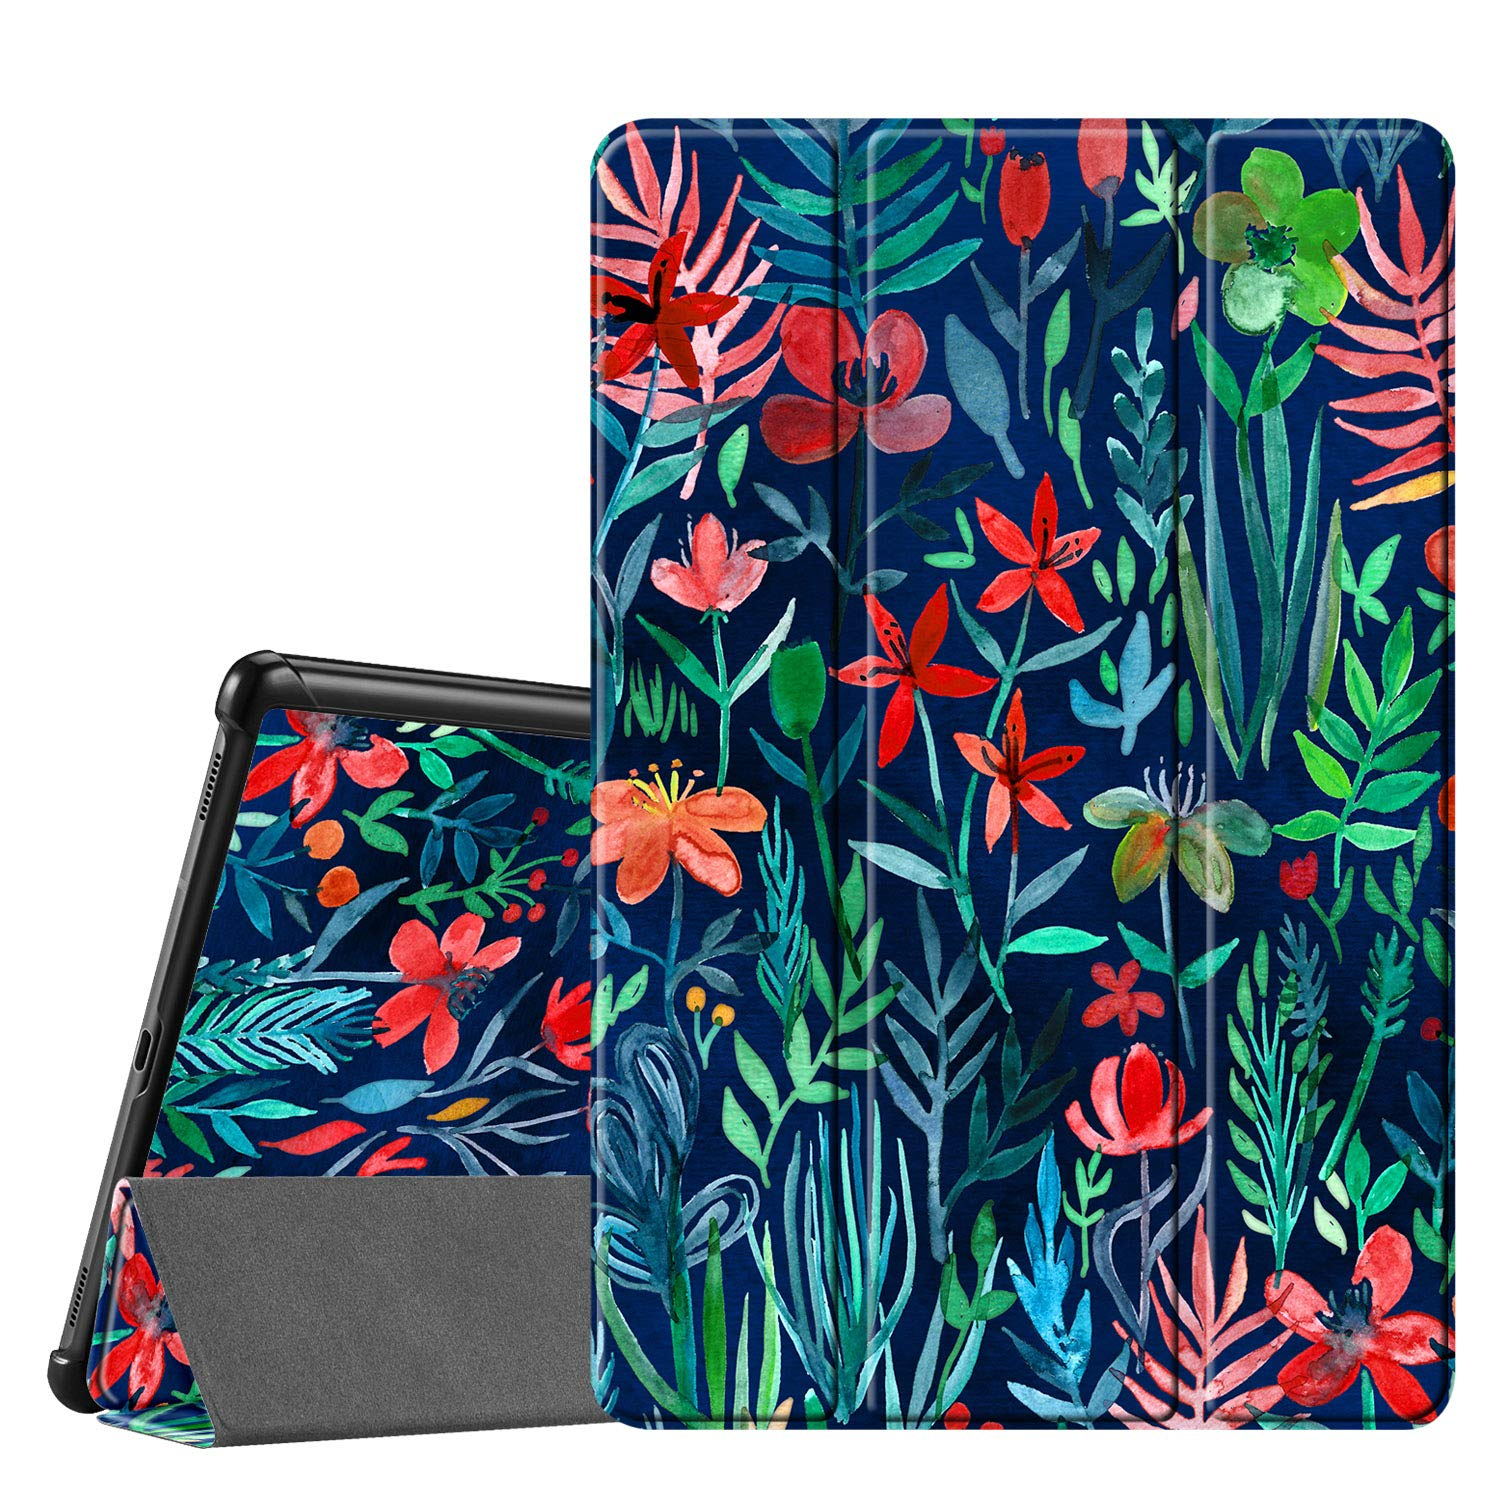 FINTIE SlimShell Case for Samsung Galaxy Tab S5e 10.5 2019 Model SM-T720 Denim Charcoal T725 Super Thin Lightweight Stand Cover with Auto Sleep//Wake Feature